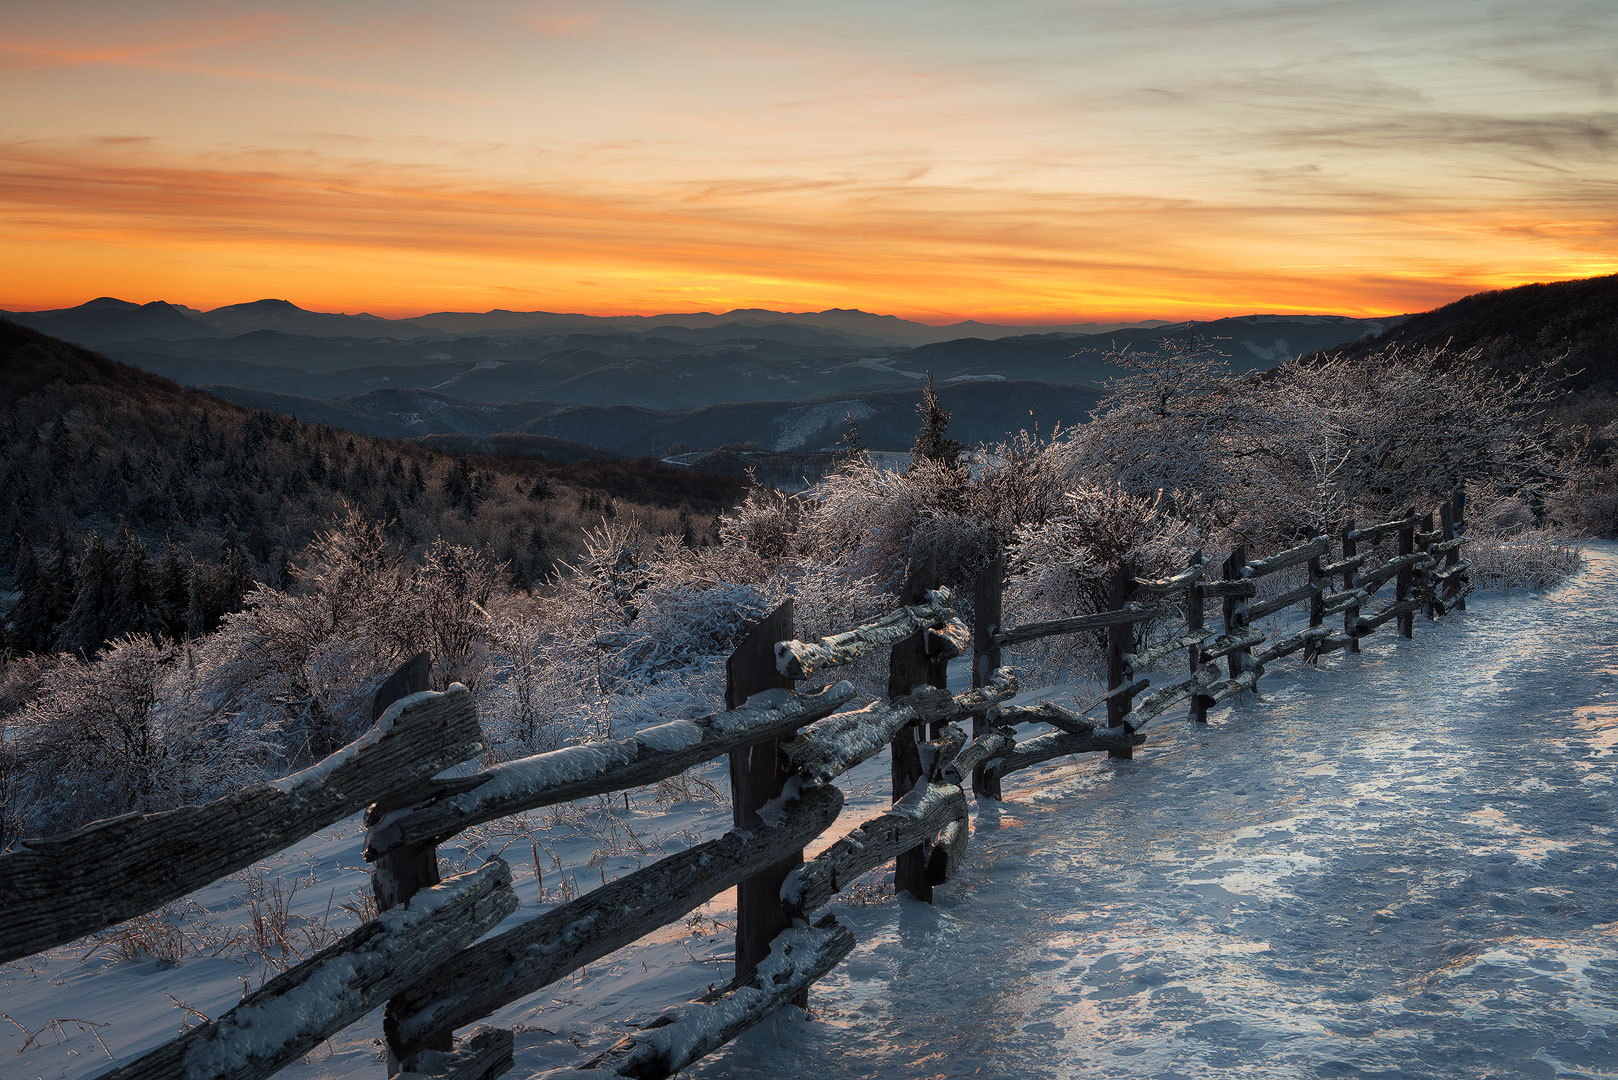 Grayson Highlands State Park, Virginia, Winter, Ice, Snow, Sunset, Beautiful Sunset, Colorful Sunset, Freezing, Mount Rogers National Recreation Area, Jefferson National Forest, Mouth of Wilson, photo